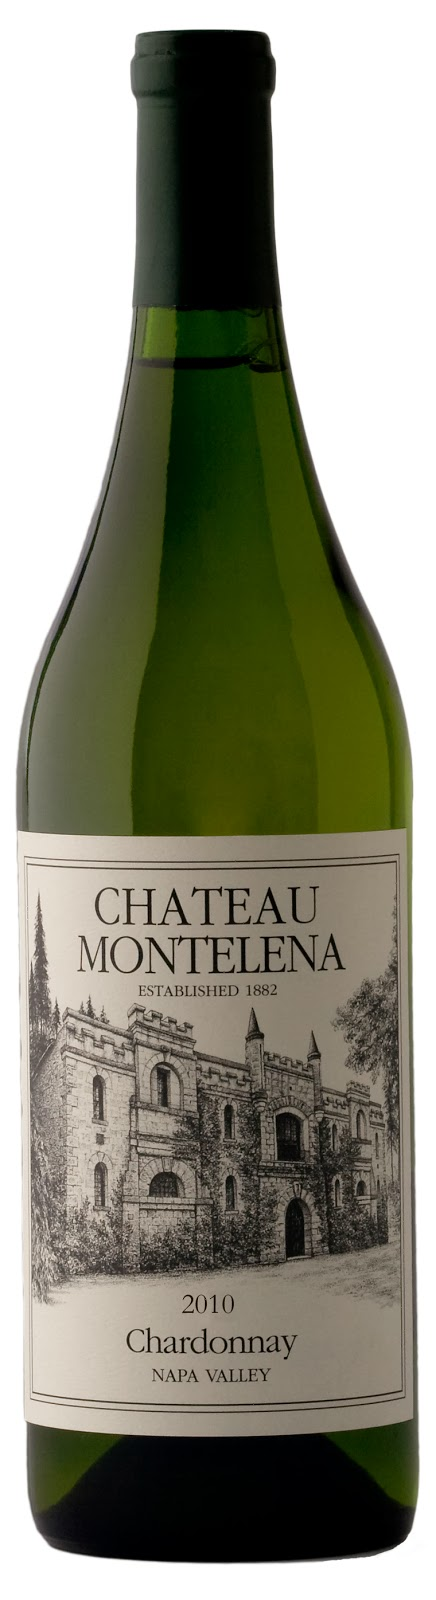 bottle of 2010 Chateau Montelena Chardonnay